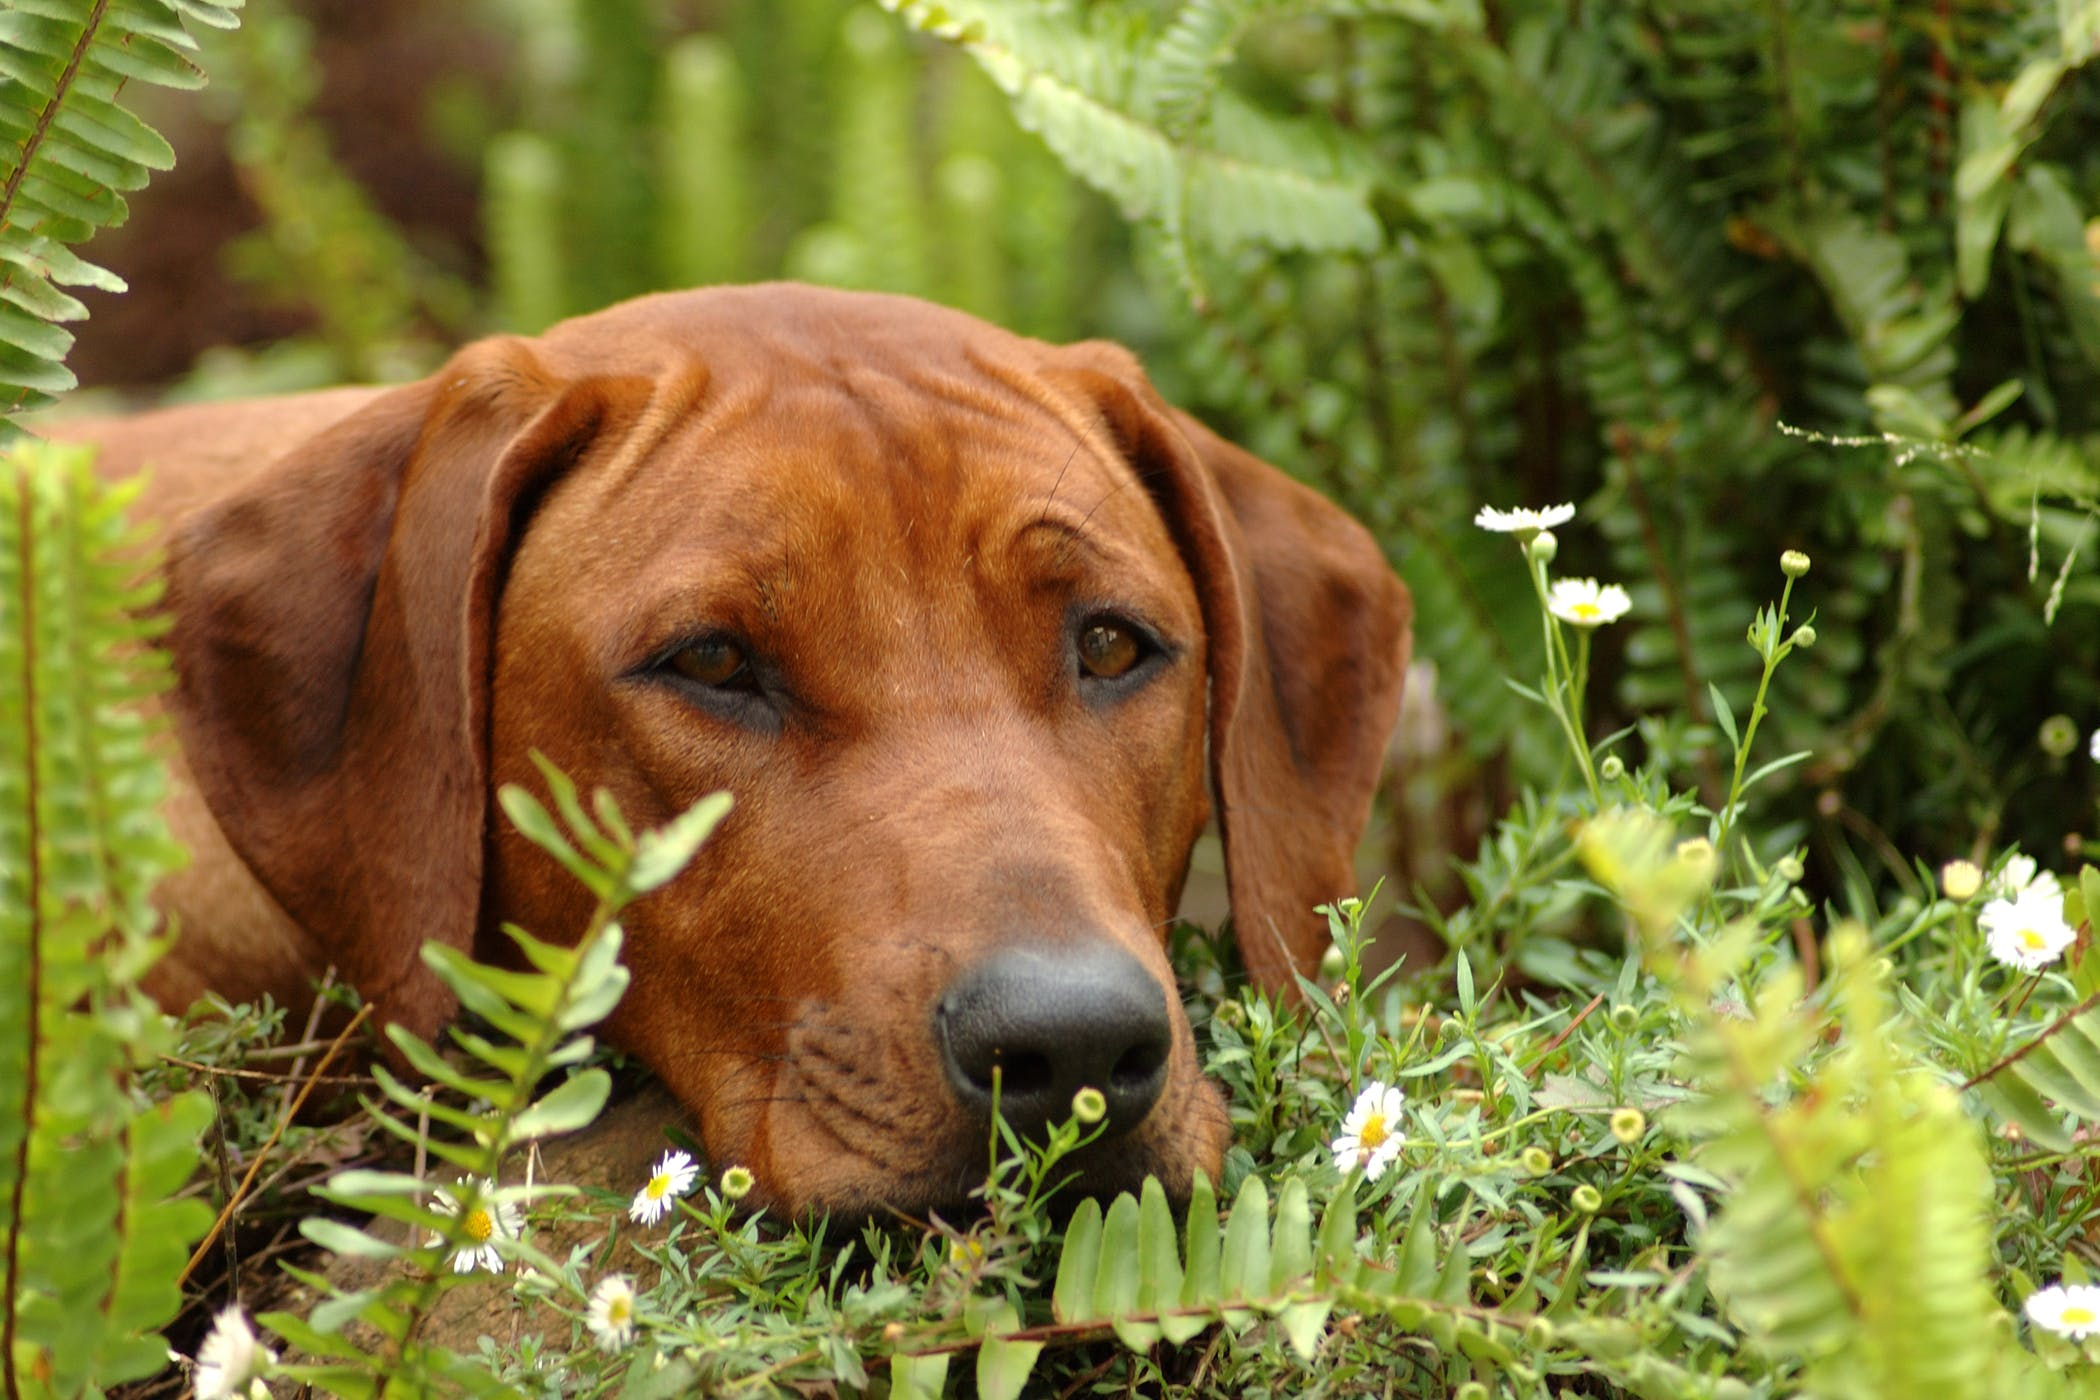 Hernia Repair in Dogs - Procedure, Efficacy, Recovery